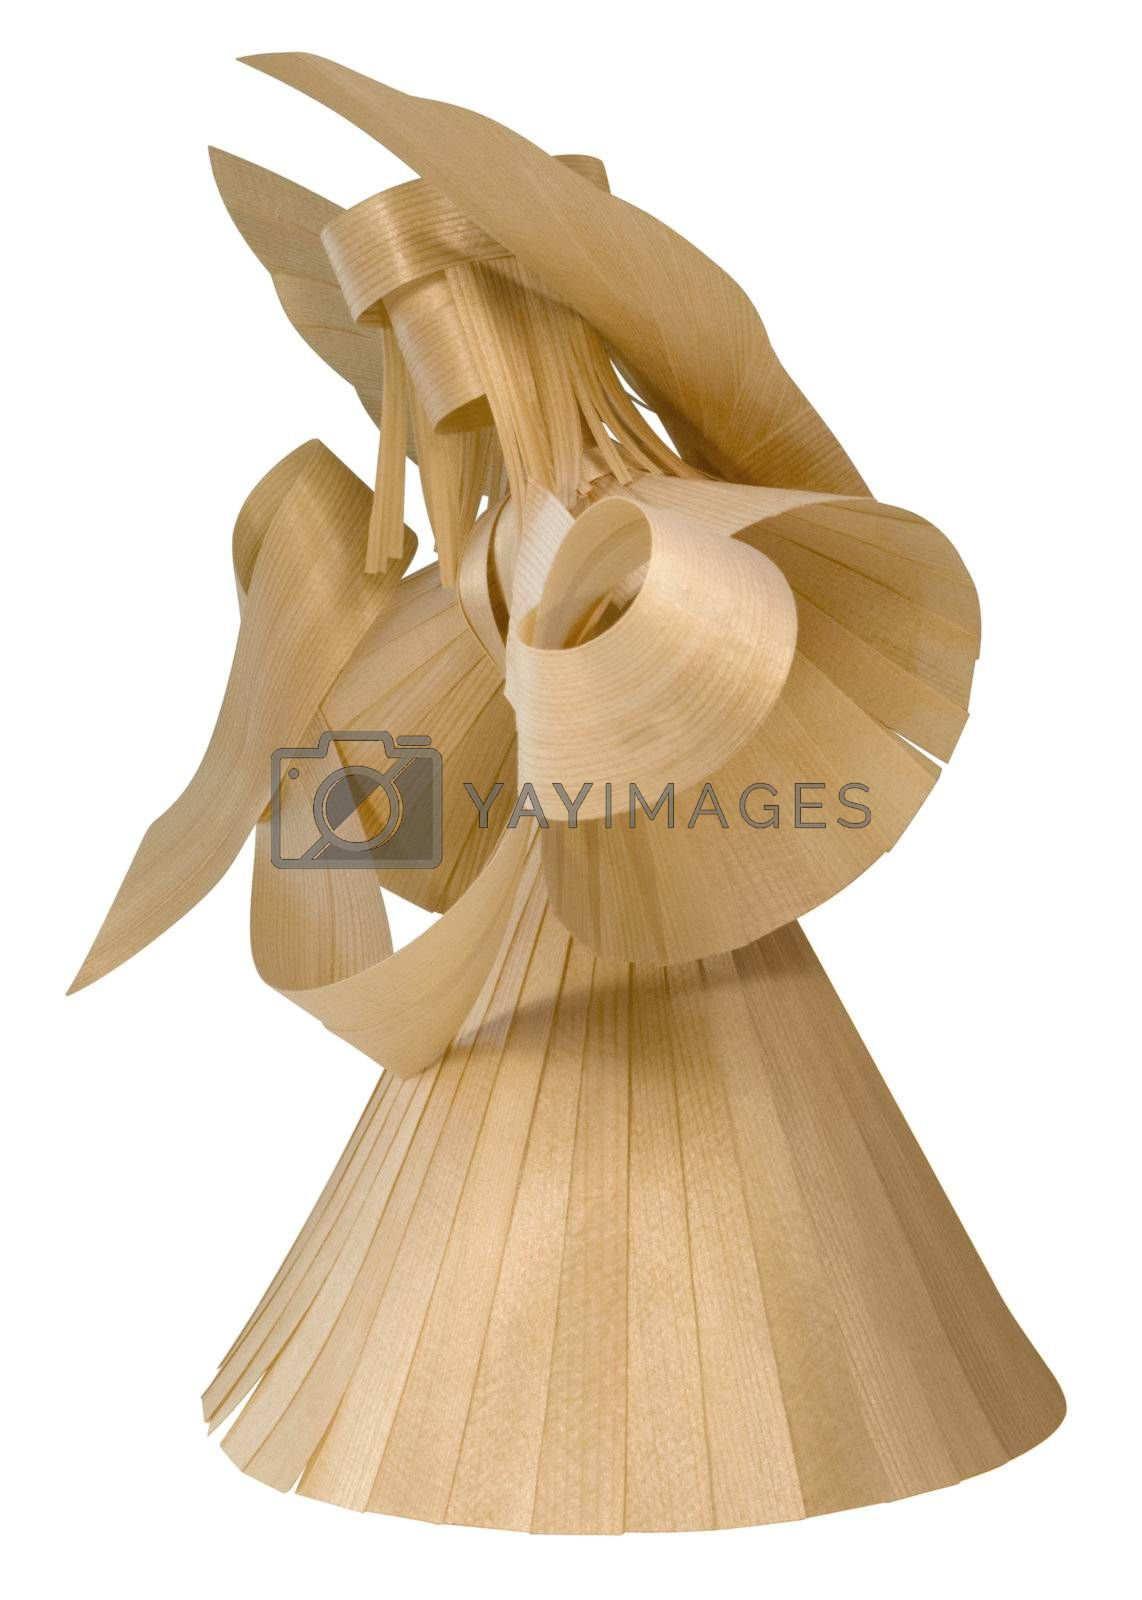 angel sculpture formed with paper thin wooden pieces in white back